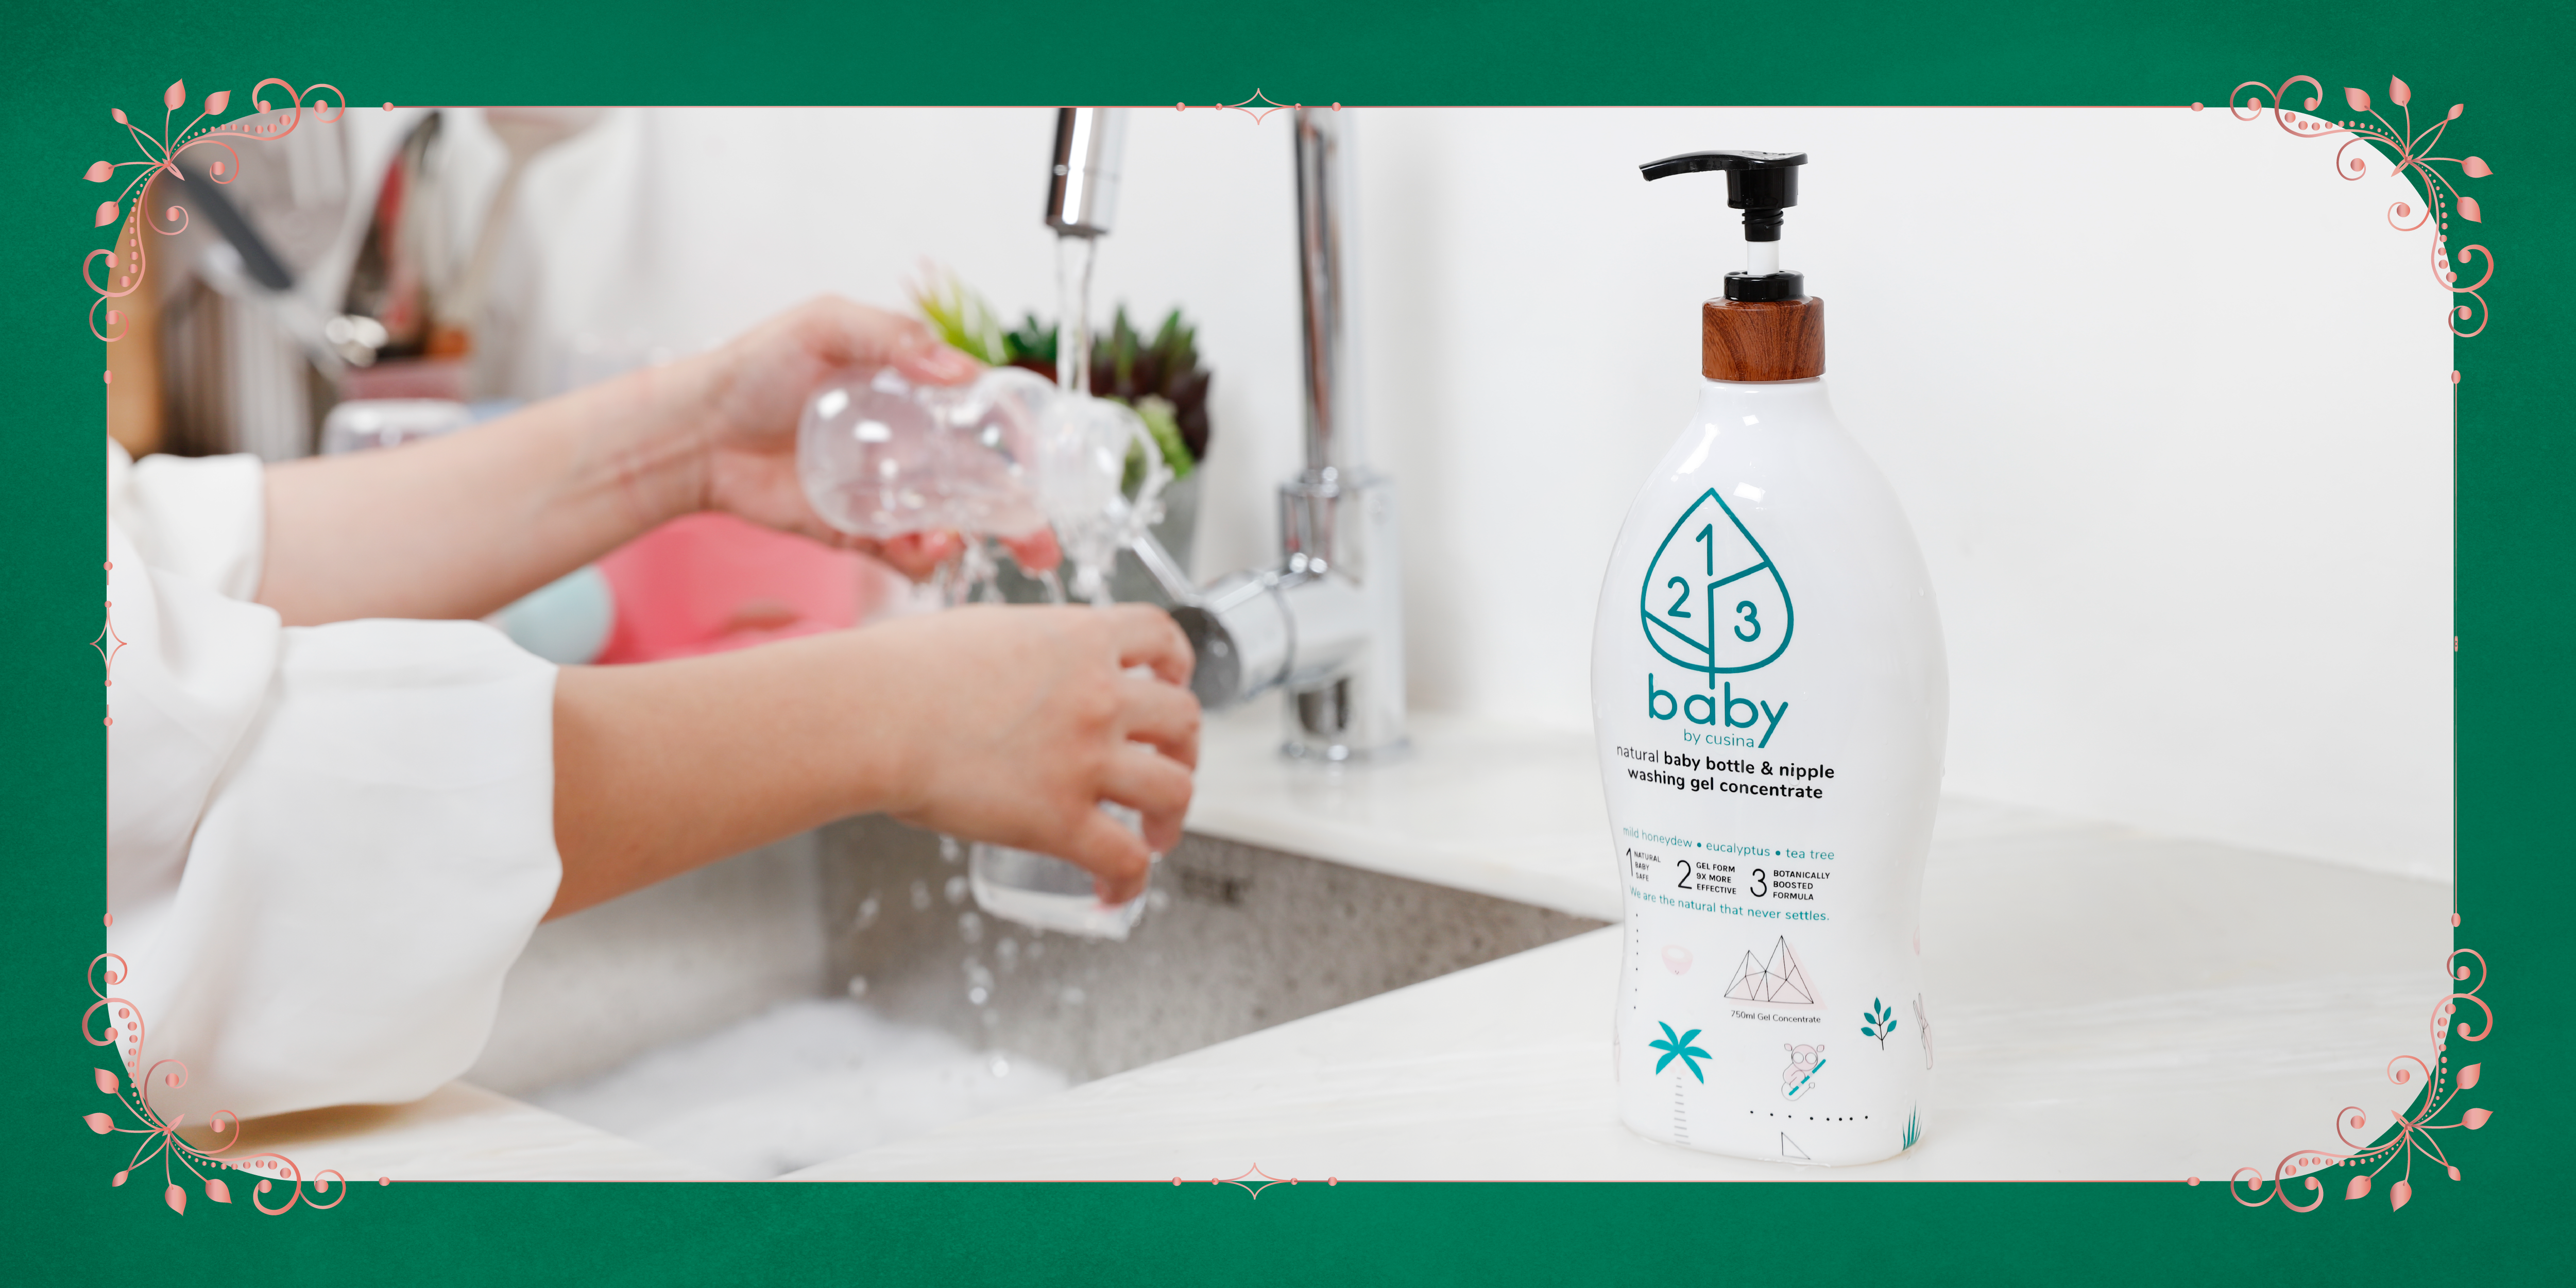 Natural Baby safe, Gel form 9x more power (LAB-certified). Botanically boosted formula- power of tea tree and eucalyptus essential oils.